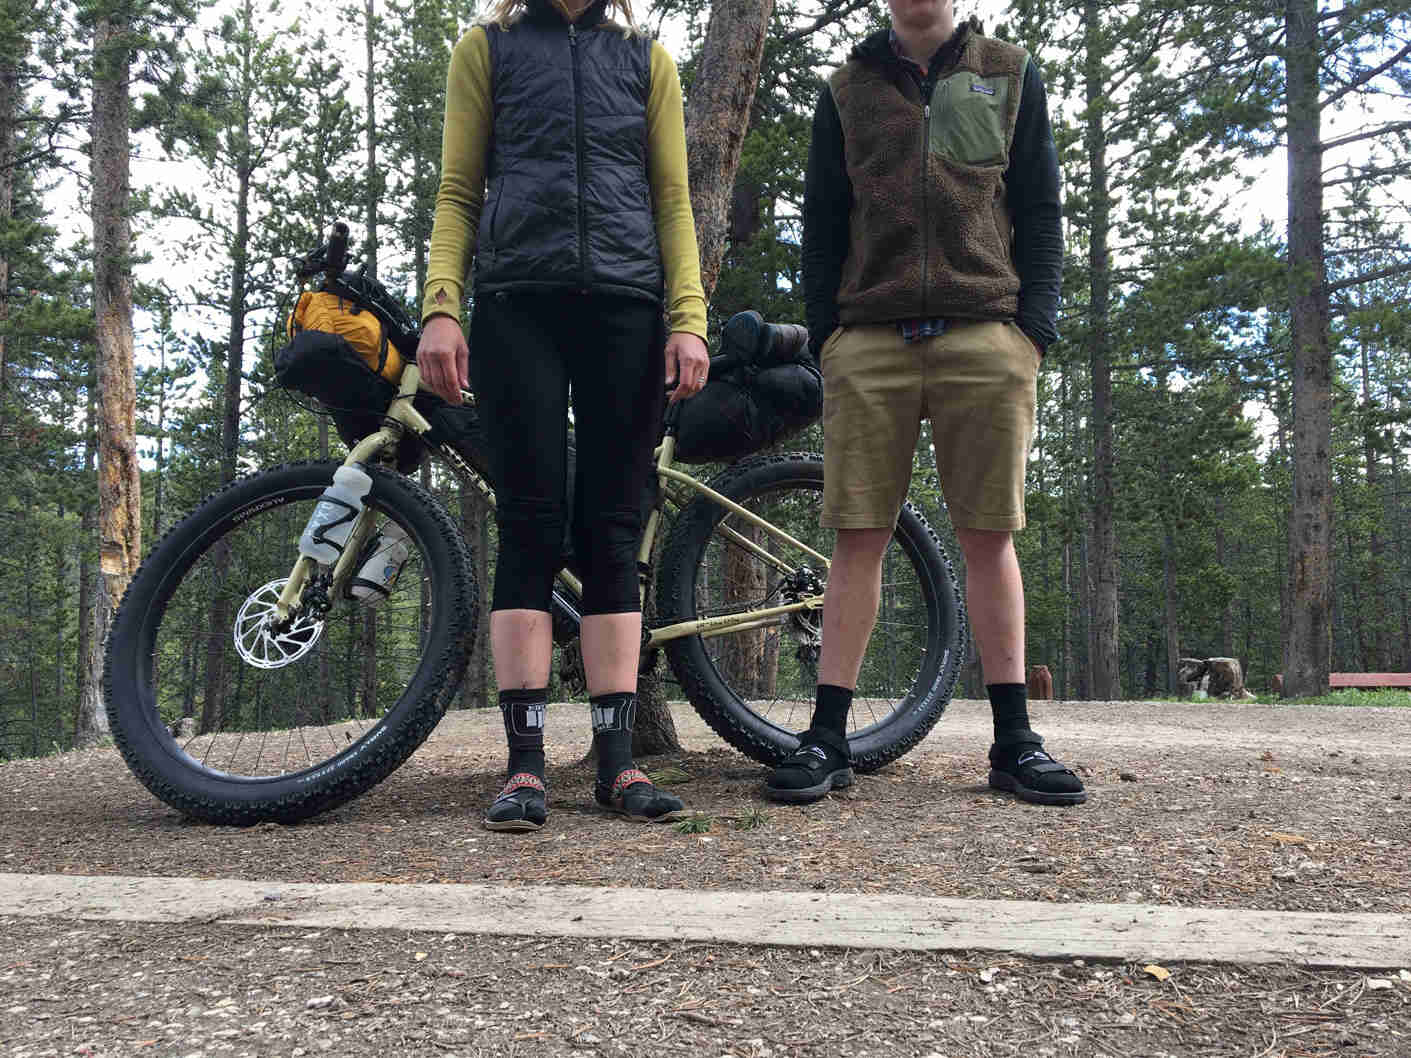 Two cyclists standing in front of a Surly ECR bike, on gravel, with pines trees in the background